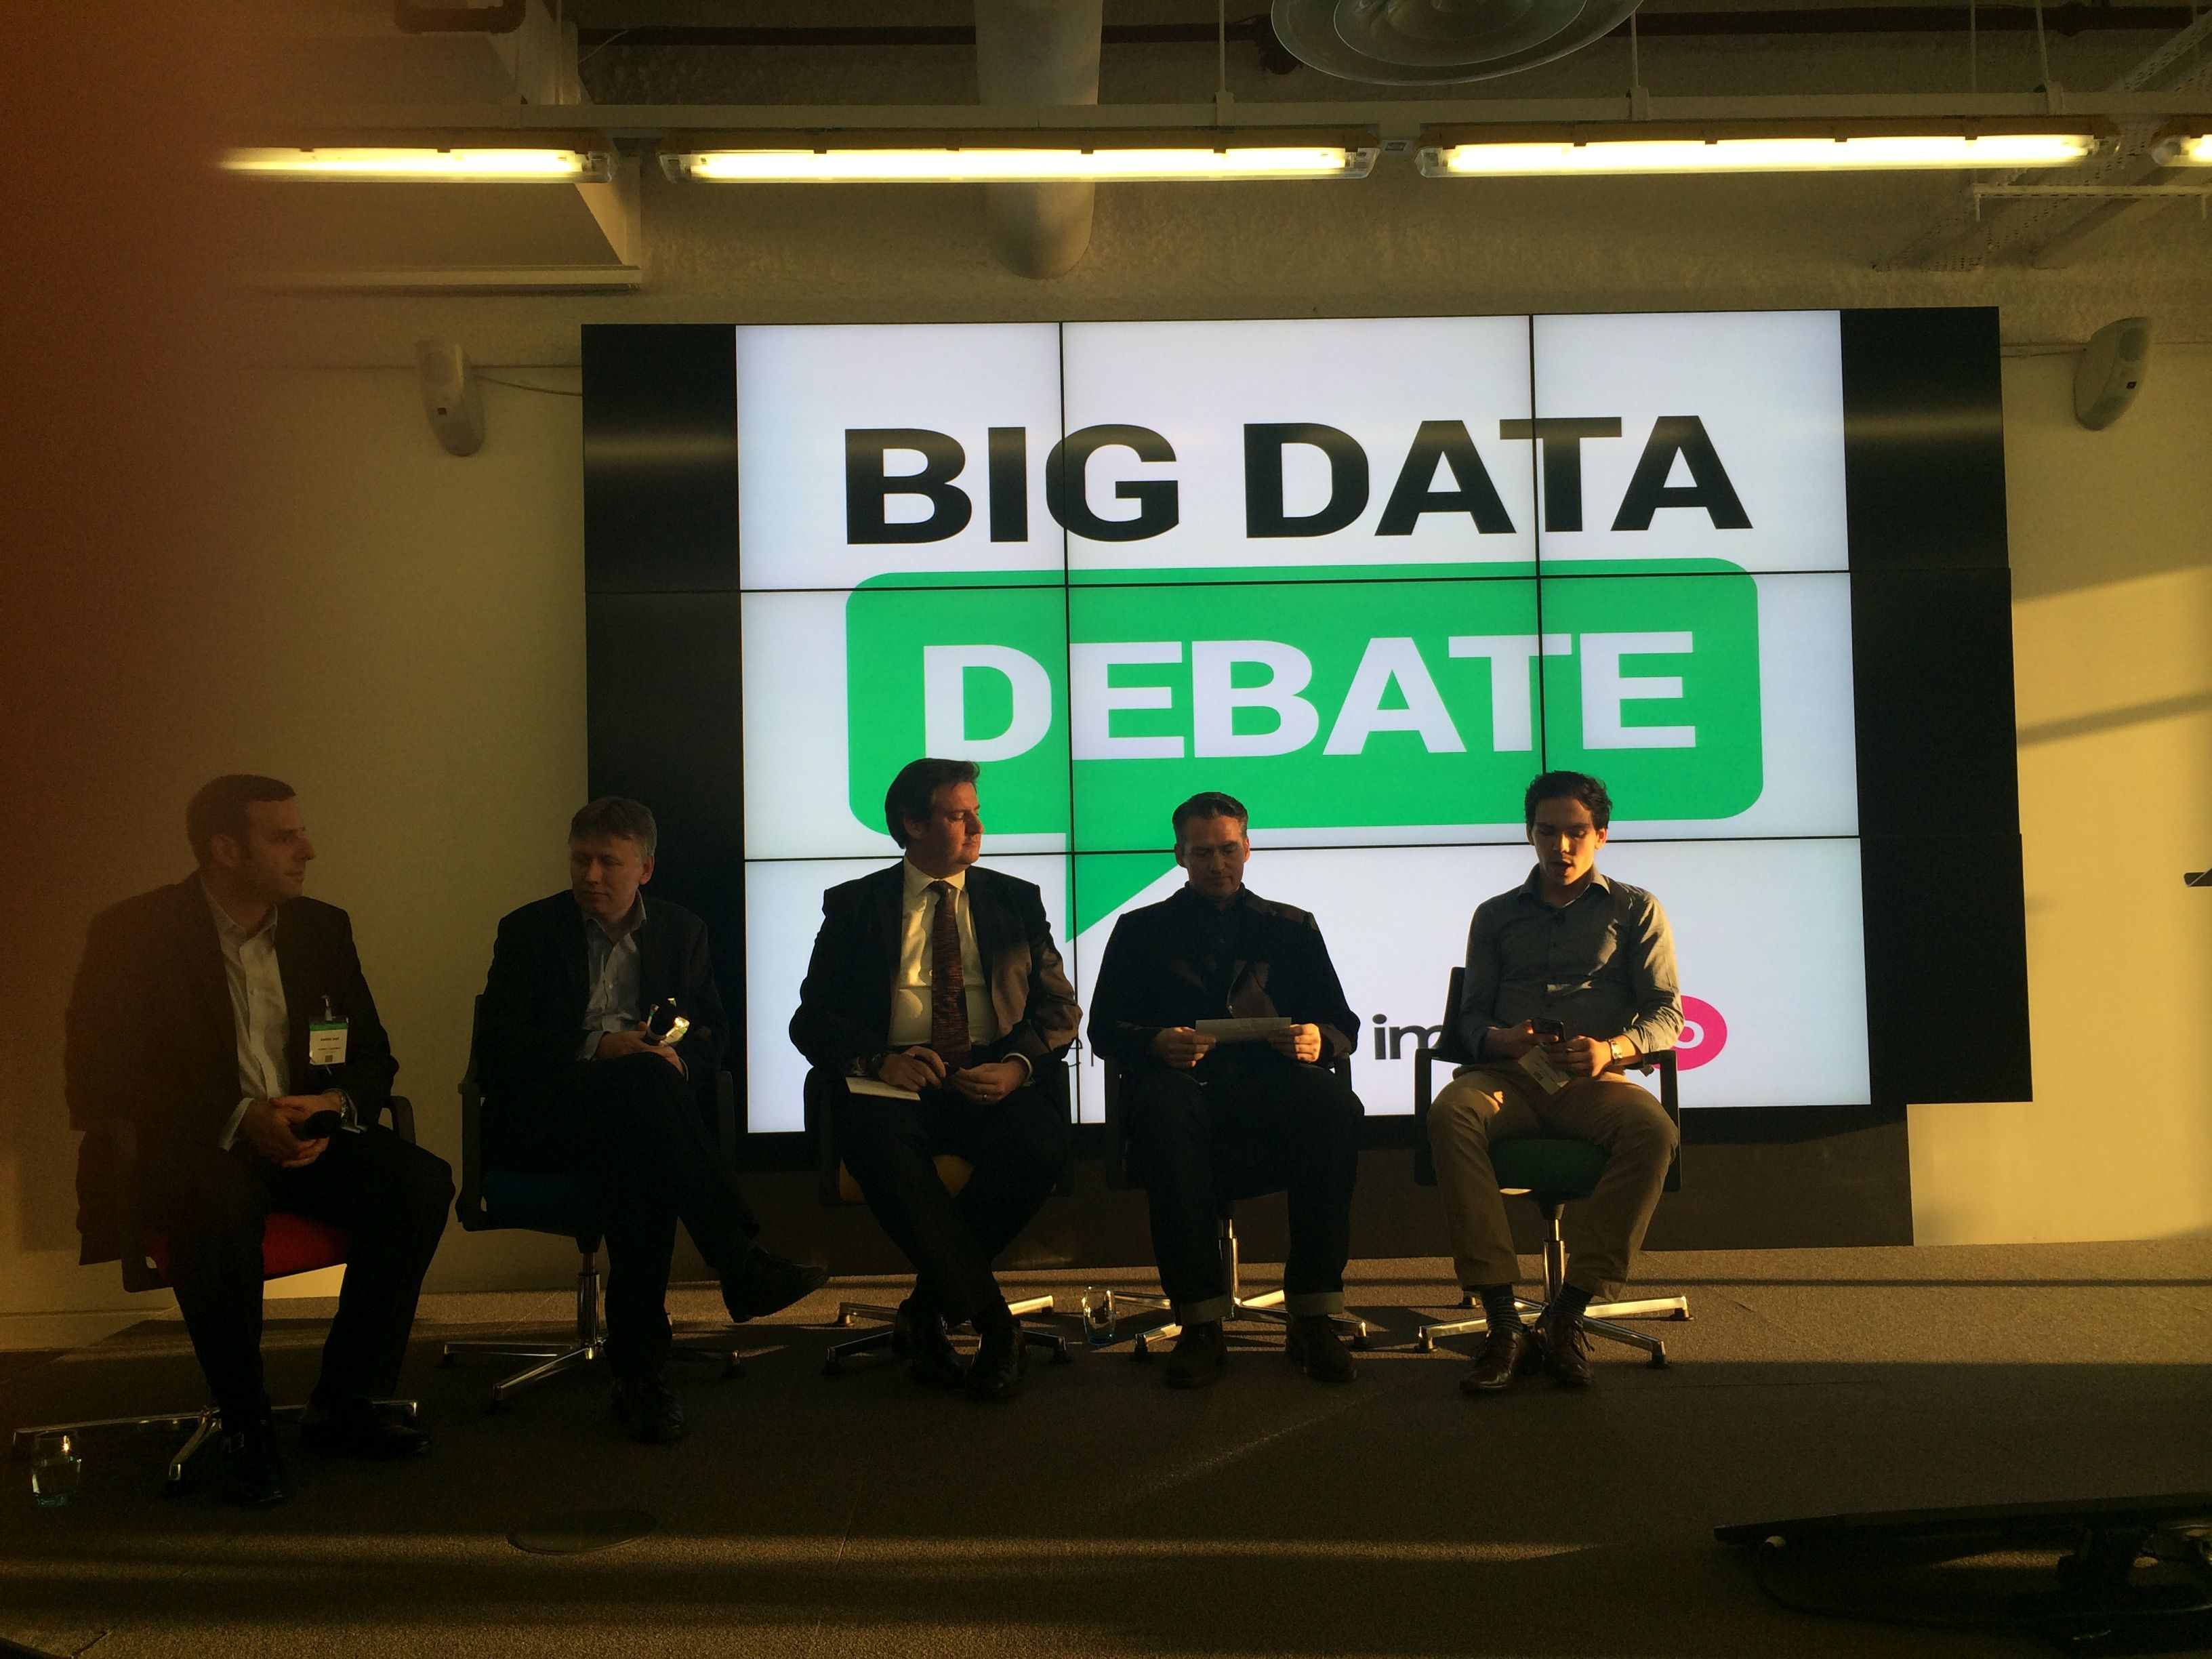 Big Data Debate